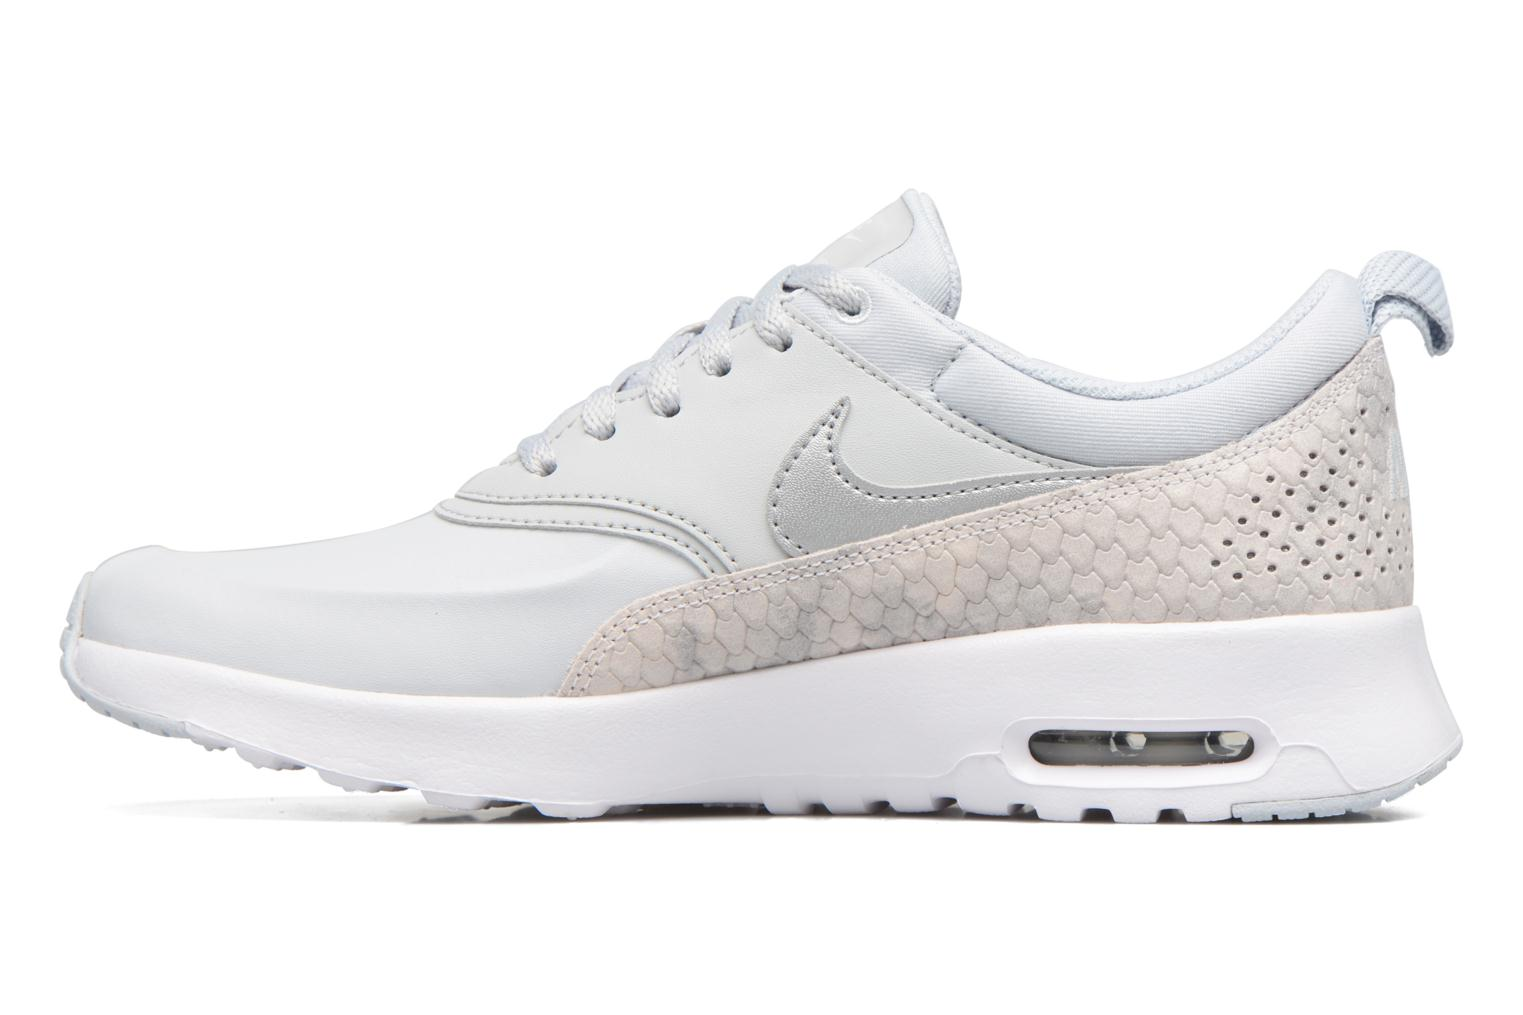 Wmns Nike Air Max Thea Prm PURE PLATINUM/PURE PLATINUM-WHITE